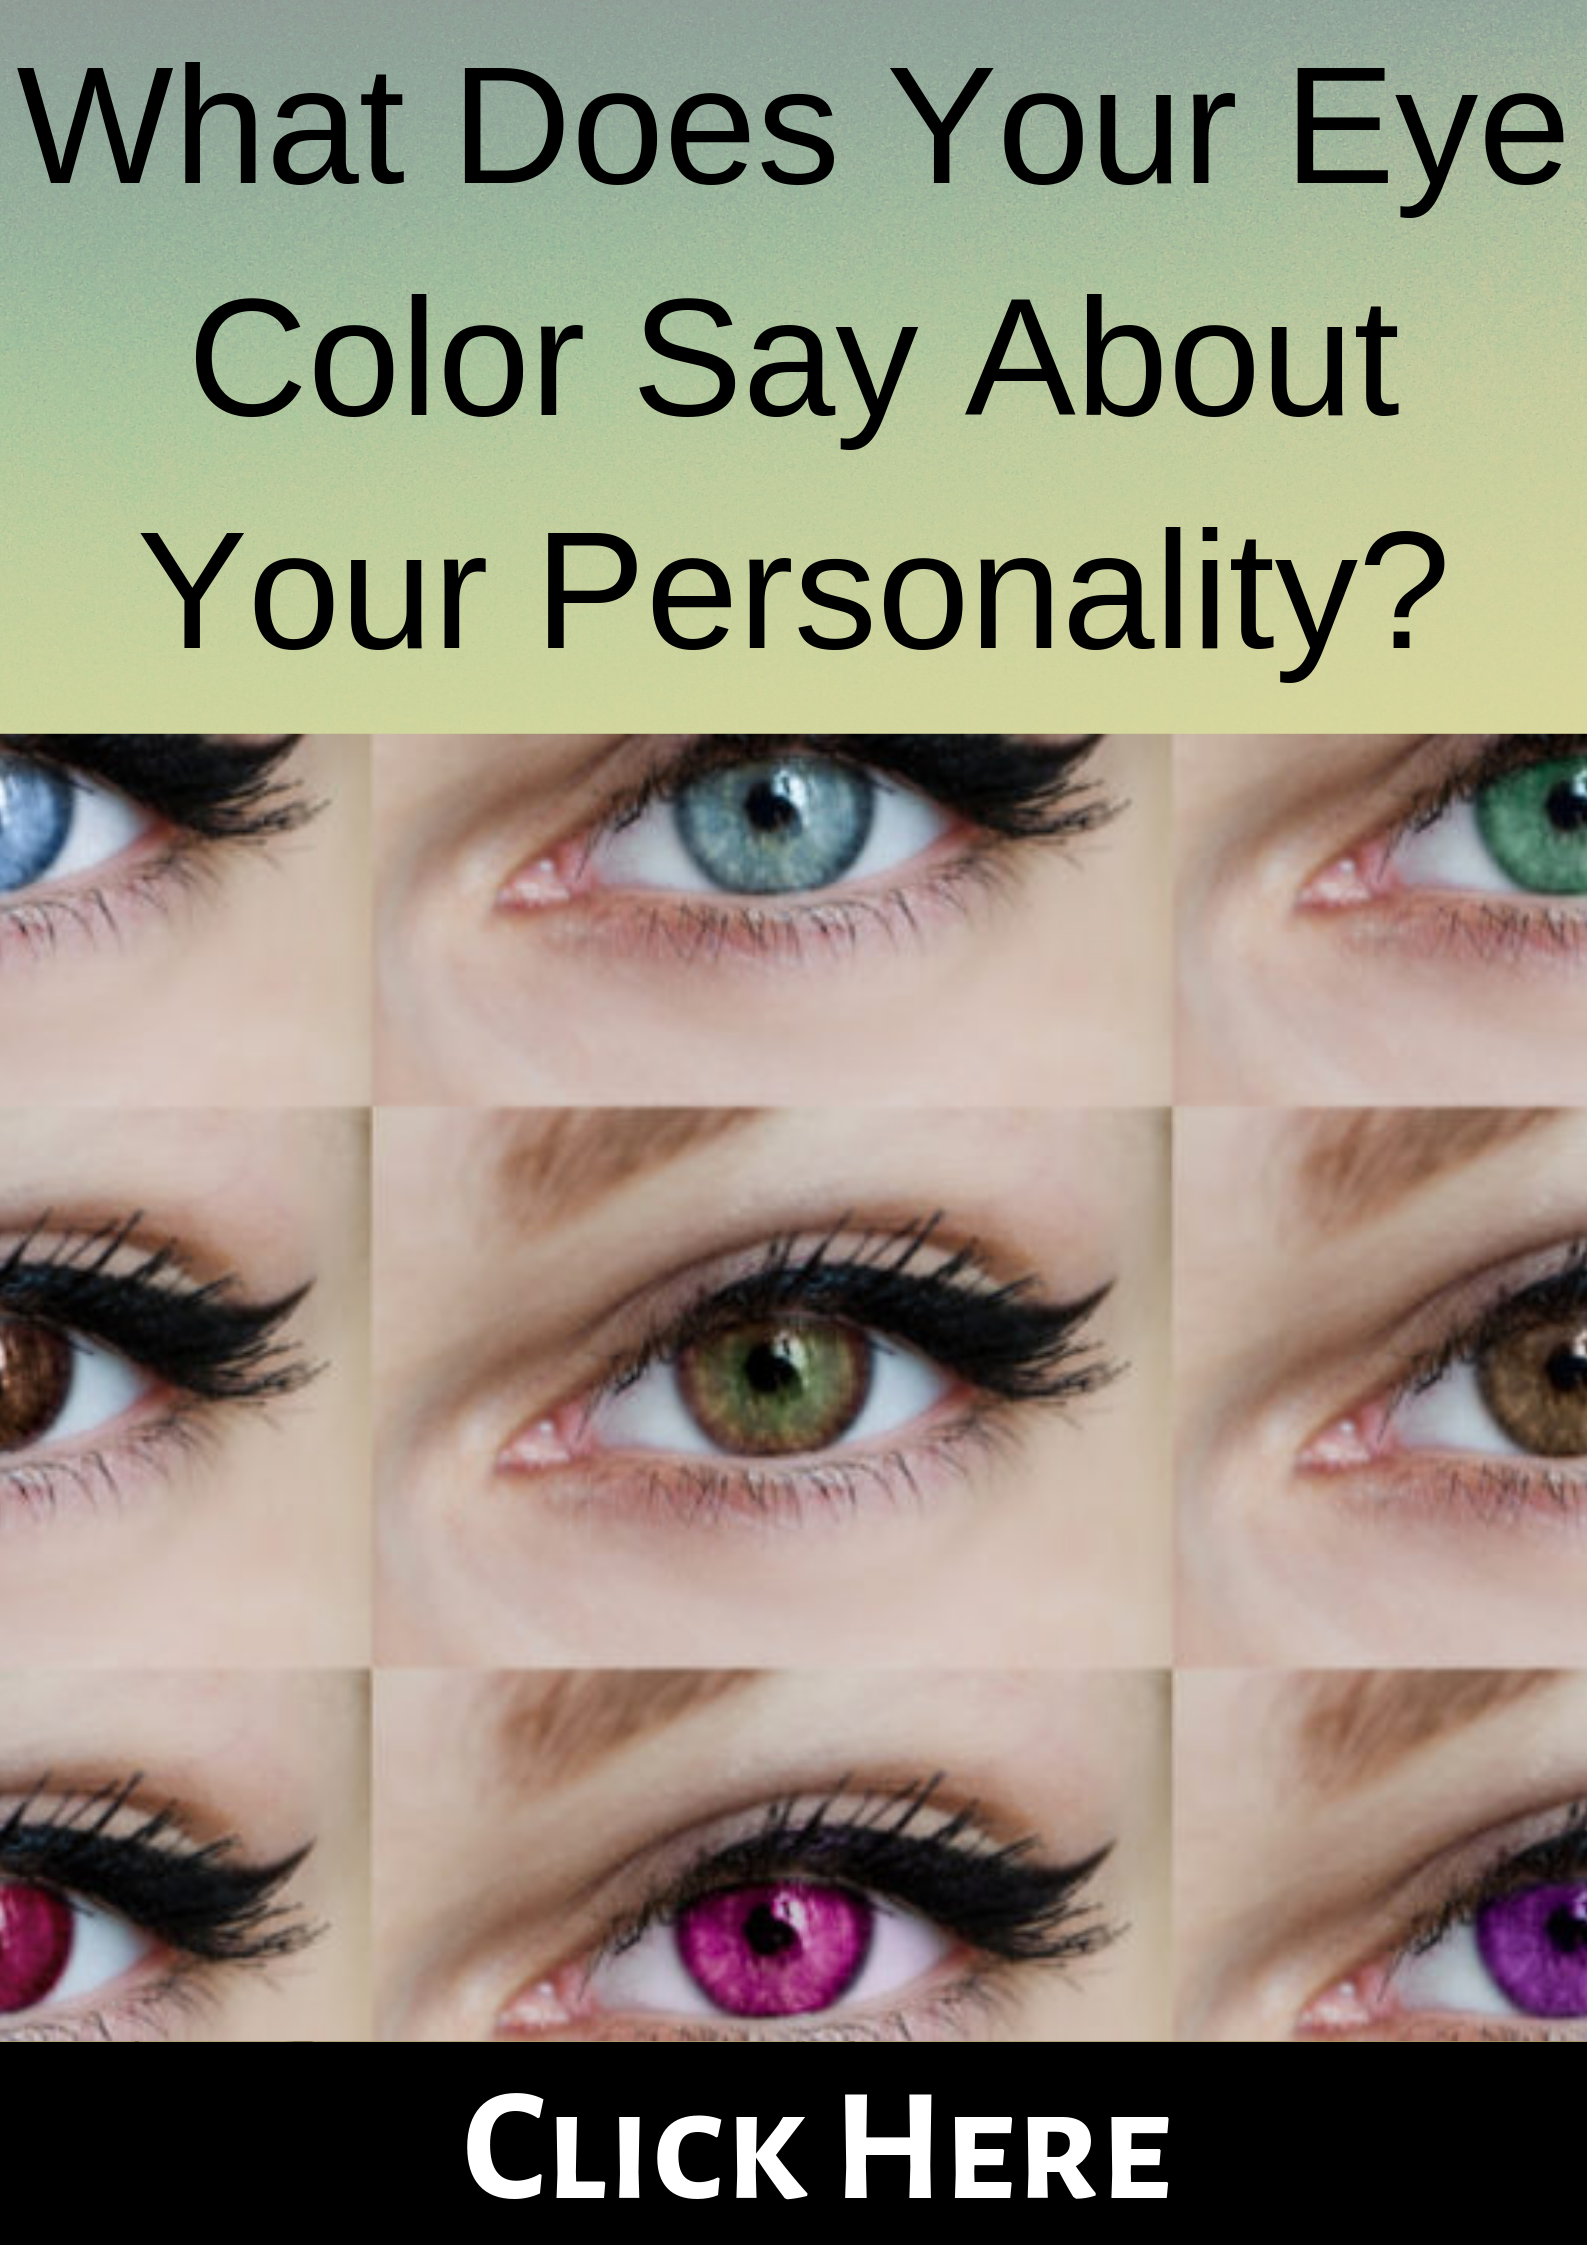 What Does Your Eye Color Say About Your Personality? Eye